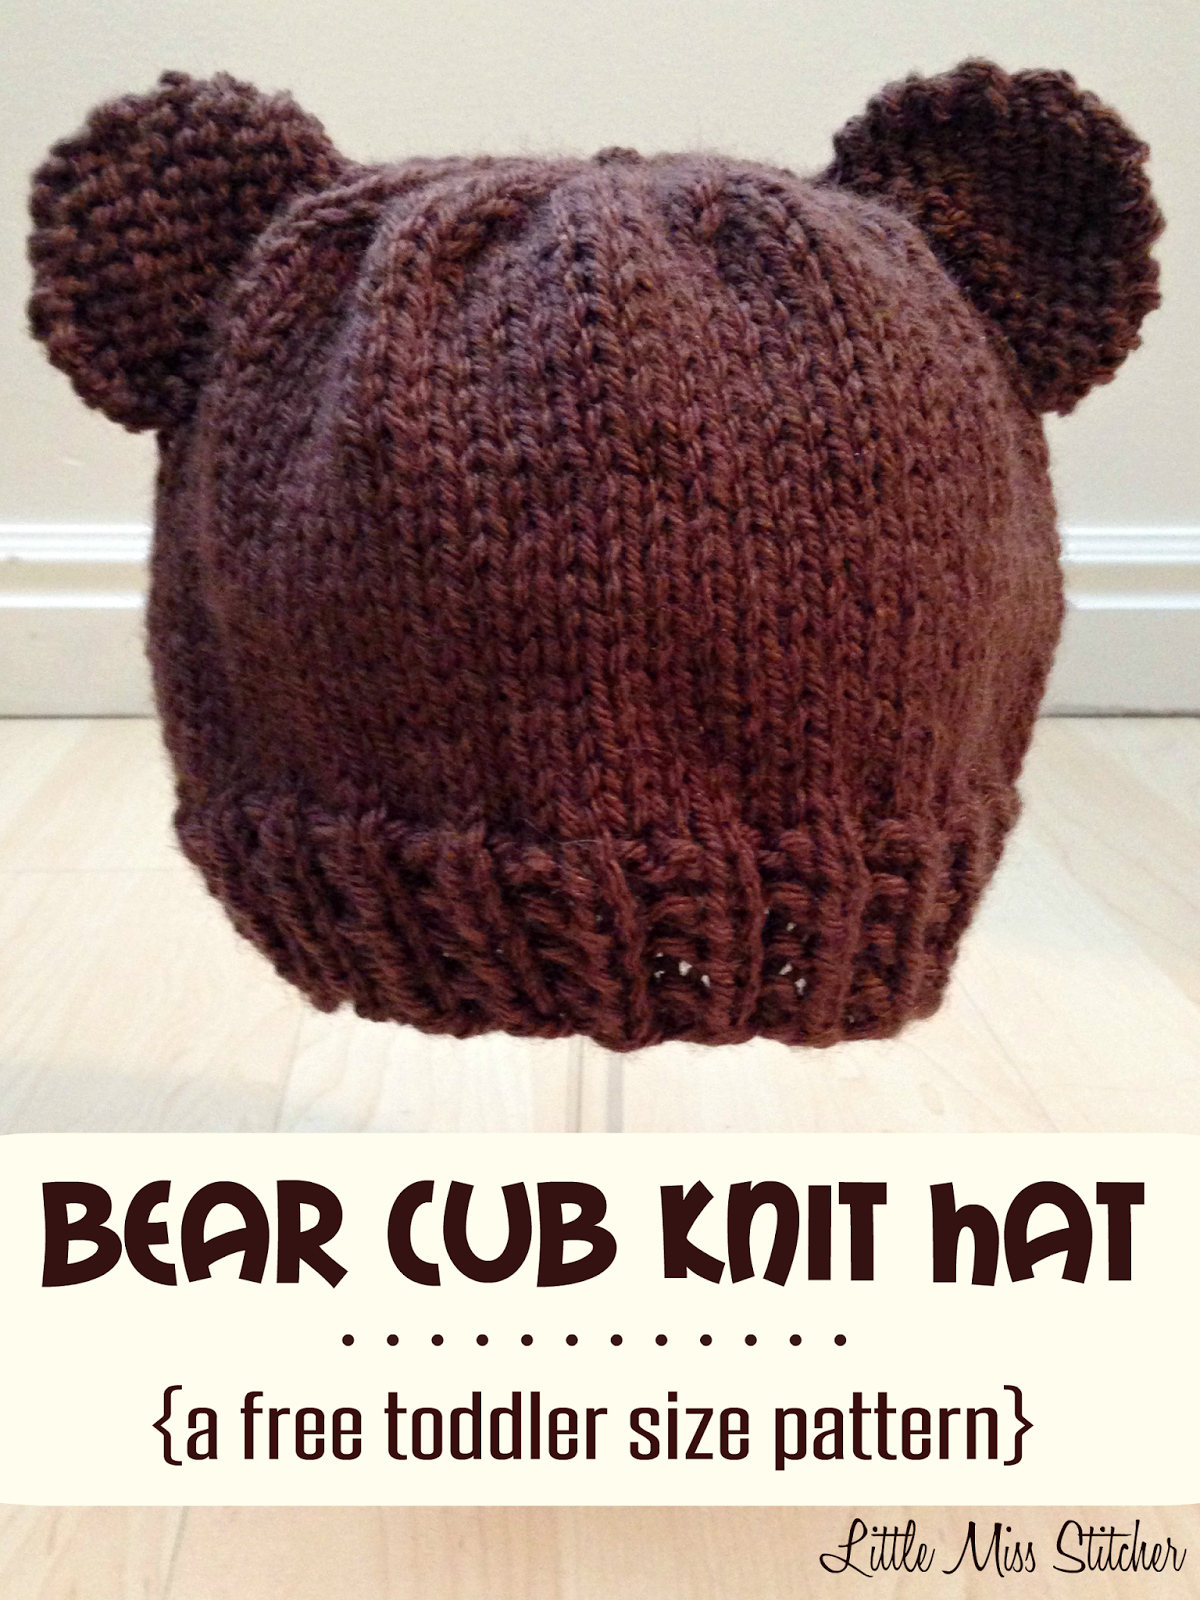 Bear cub knit hat pattern for toddlers thinking i could do this bear cub knit hat pattern for toddlers thinking i could do this in black and bankloansurffo Choice Image